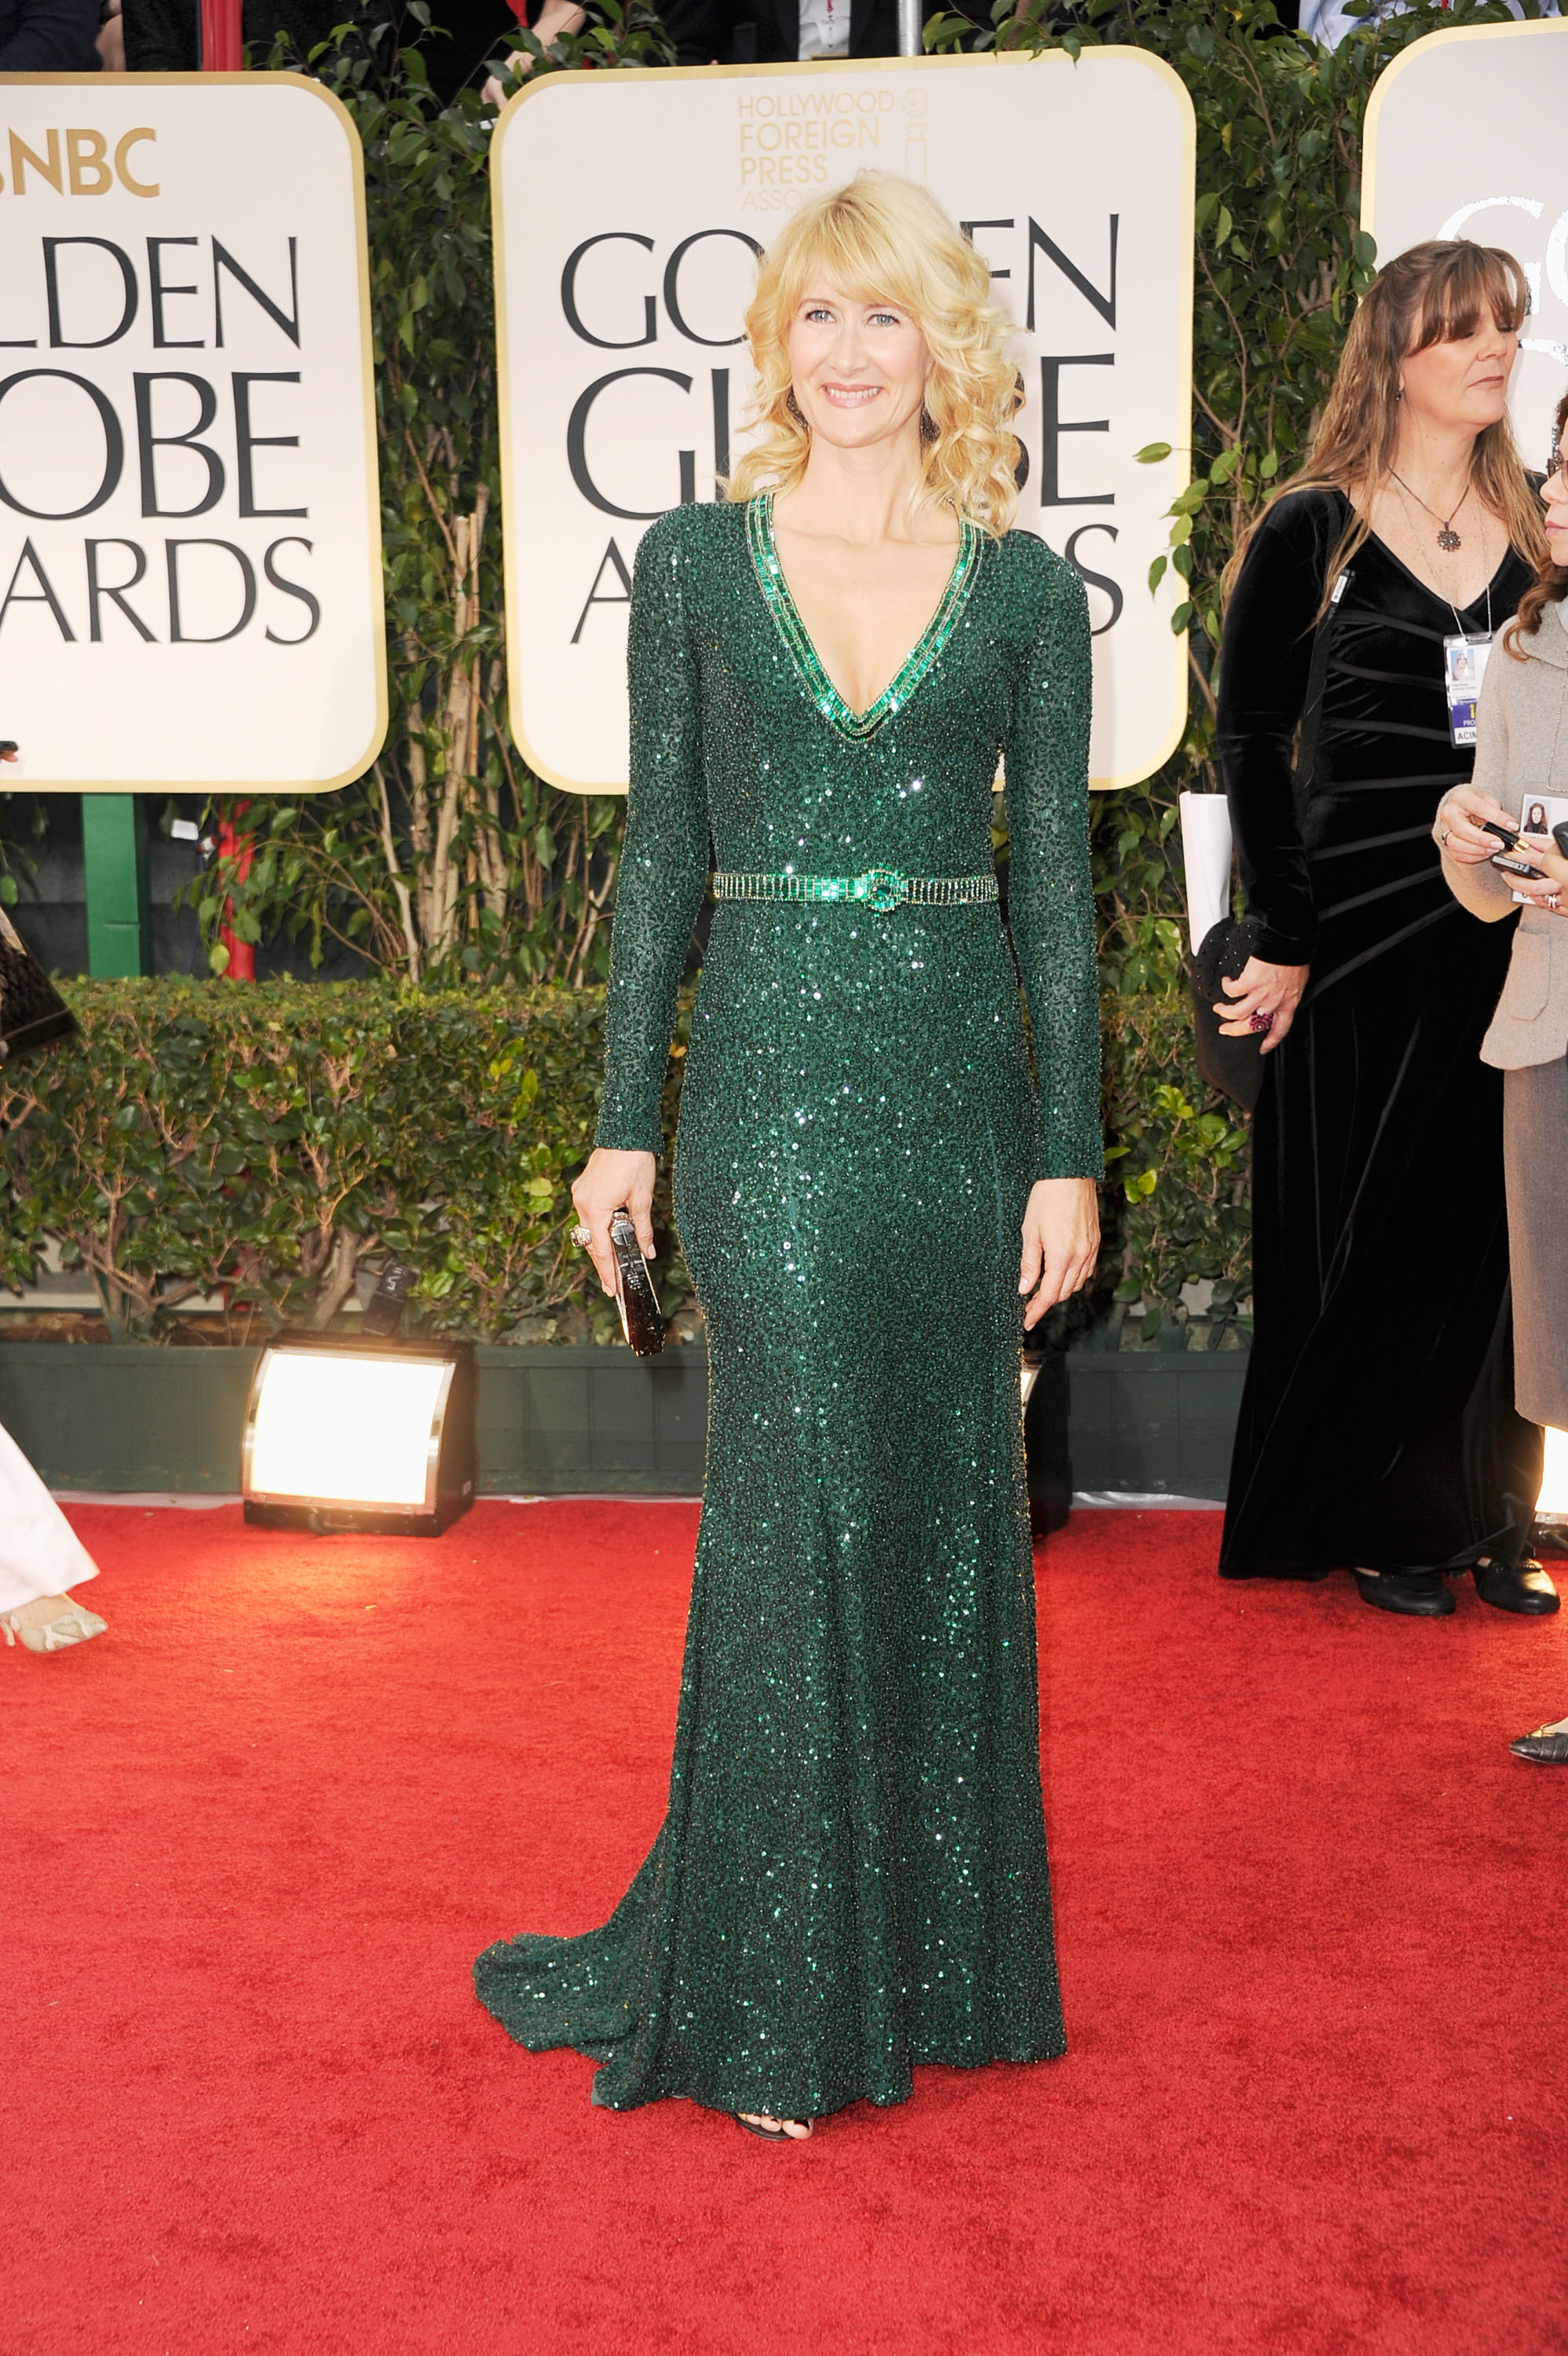 Laura Dern at the Golden Globes.